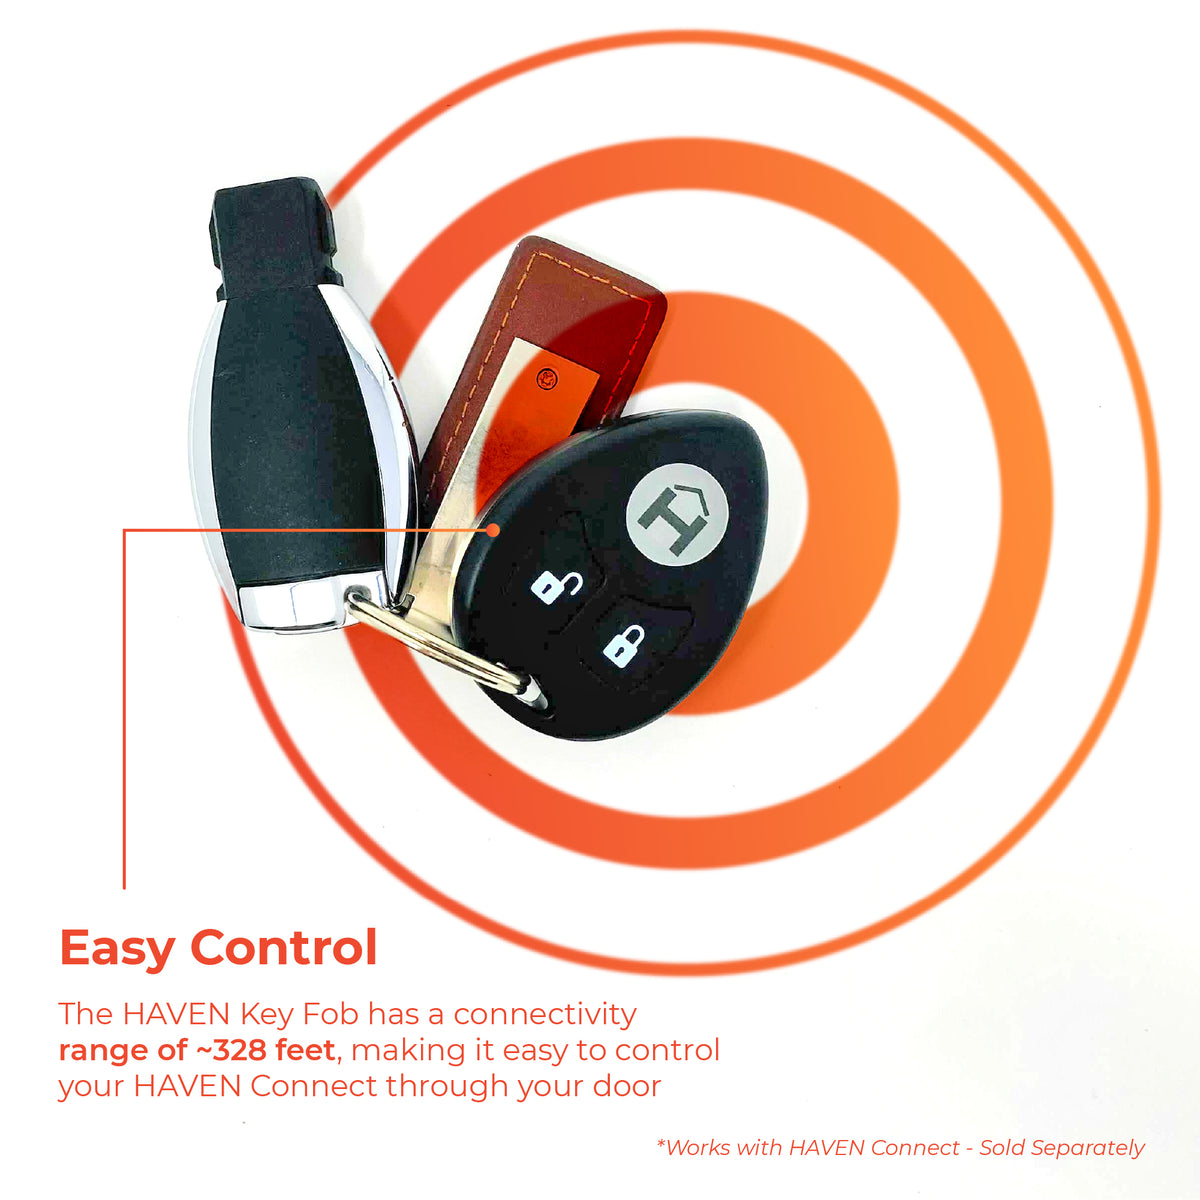 The Haven key fob has a connectivity range of about 328 feet, making it easy to control through your door